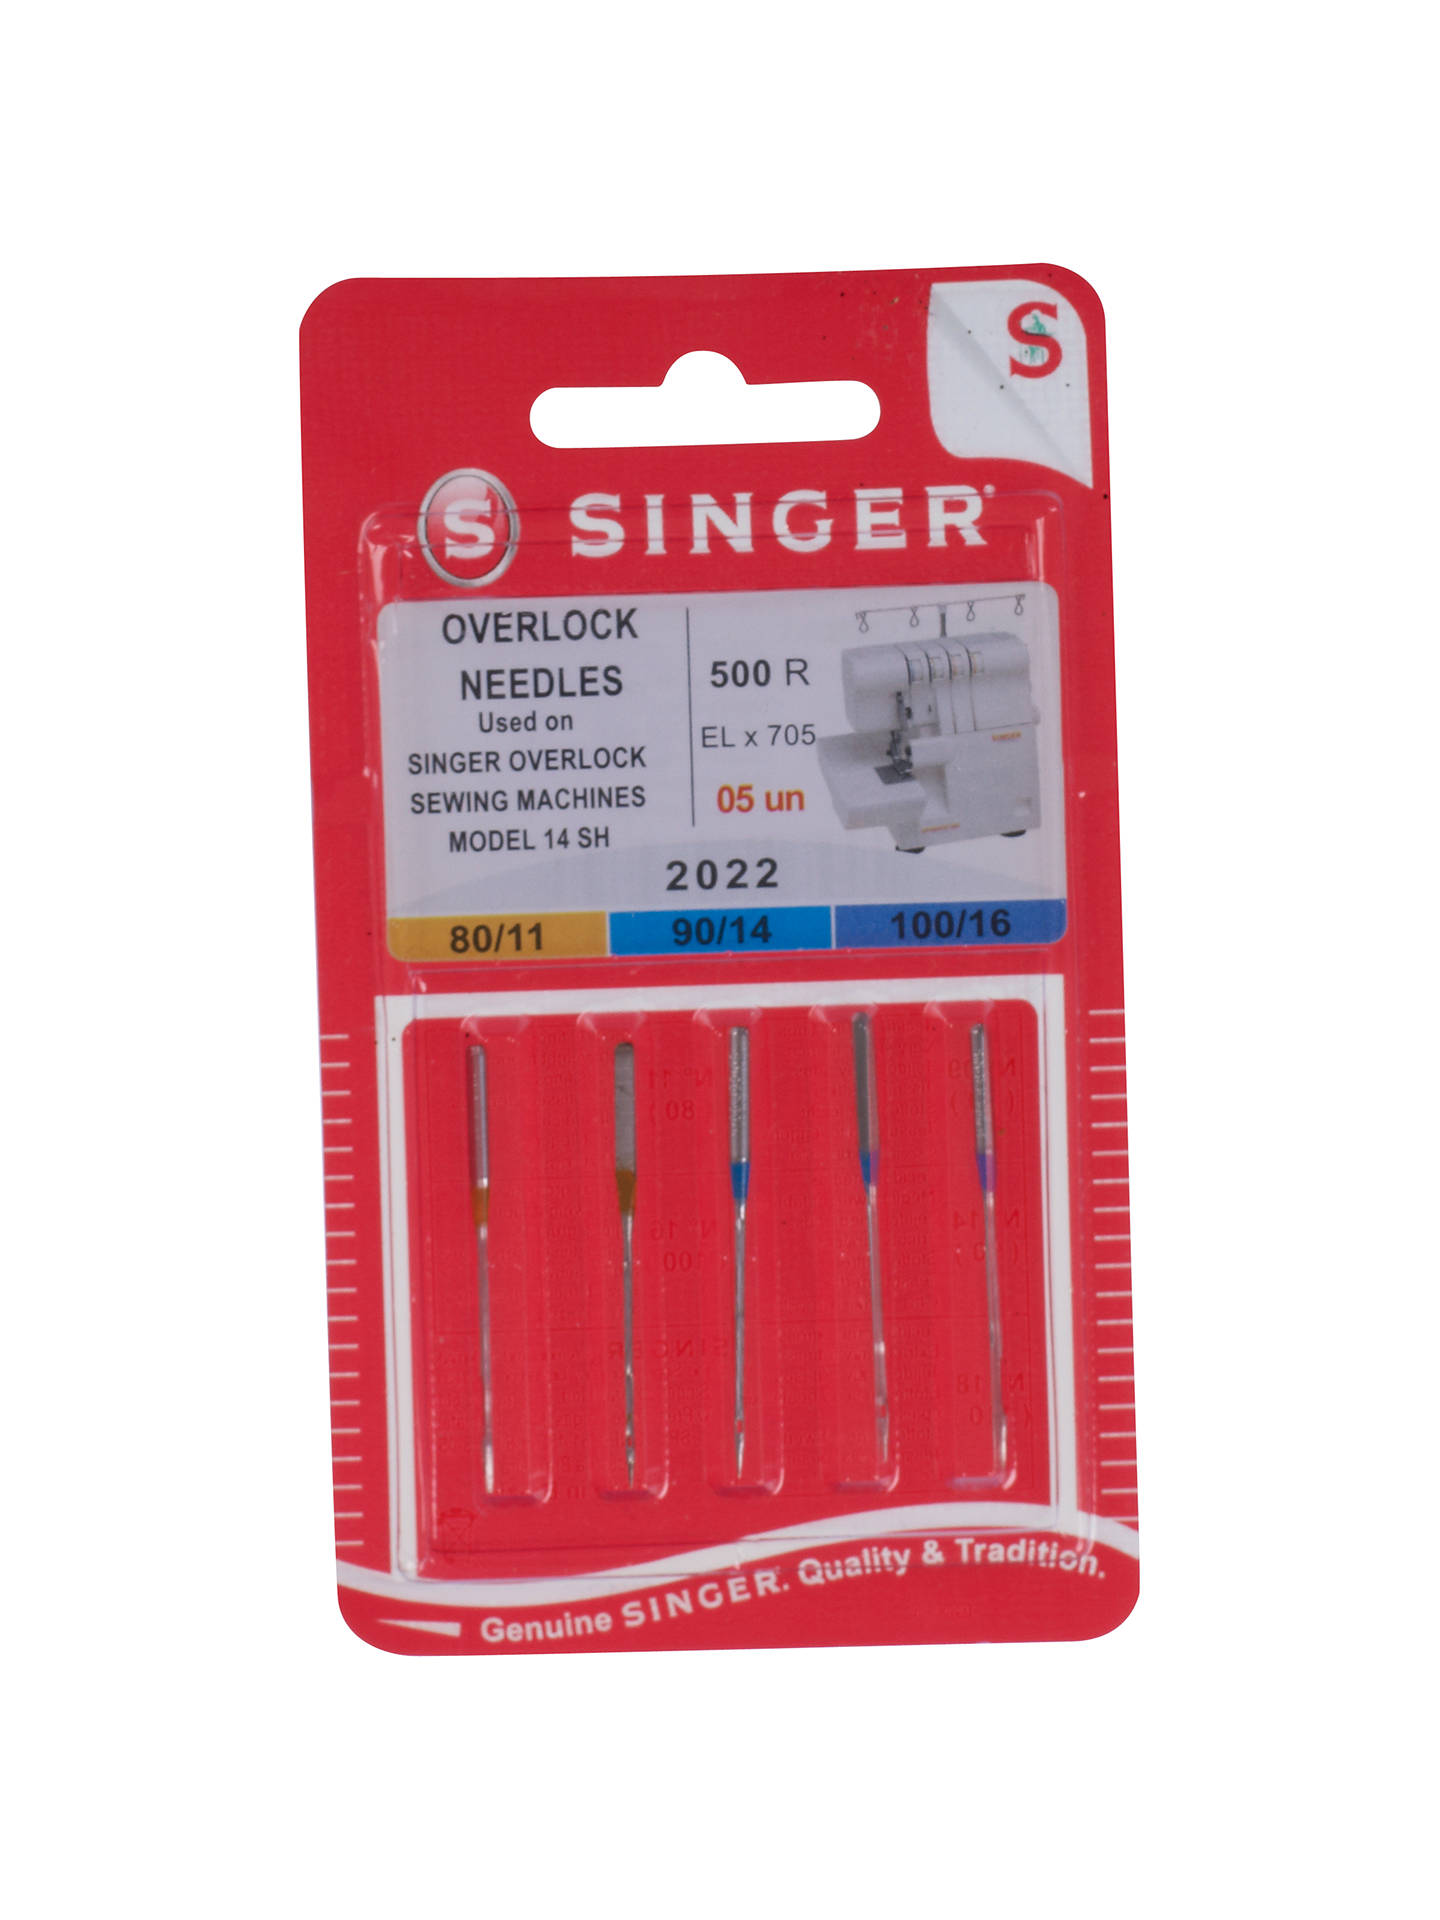 BuySinger Overlock Sewing Machine Needles, 2022 Online at johnlewis.com